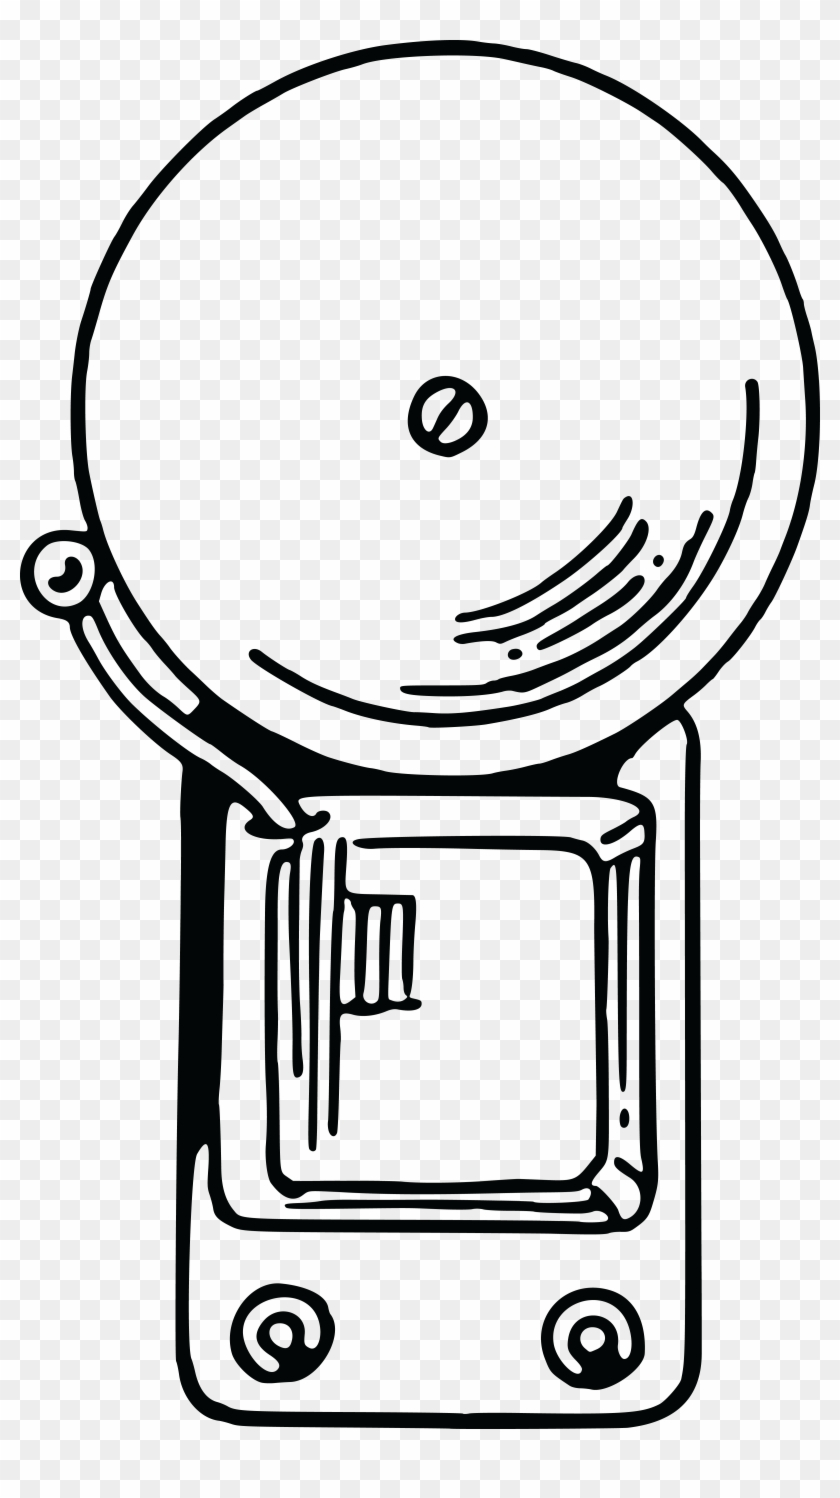 Free Clipart - School Bell Clipart Black And White #129141